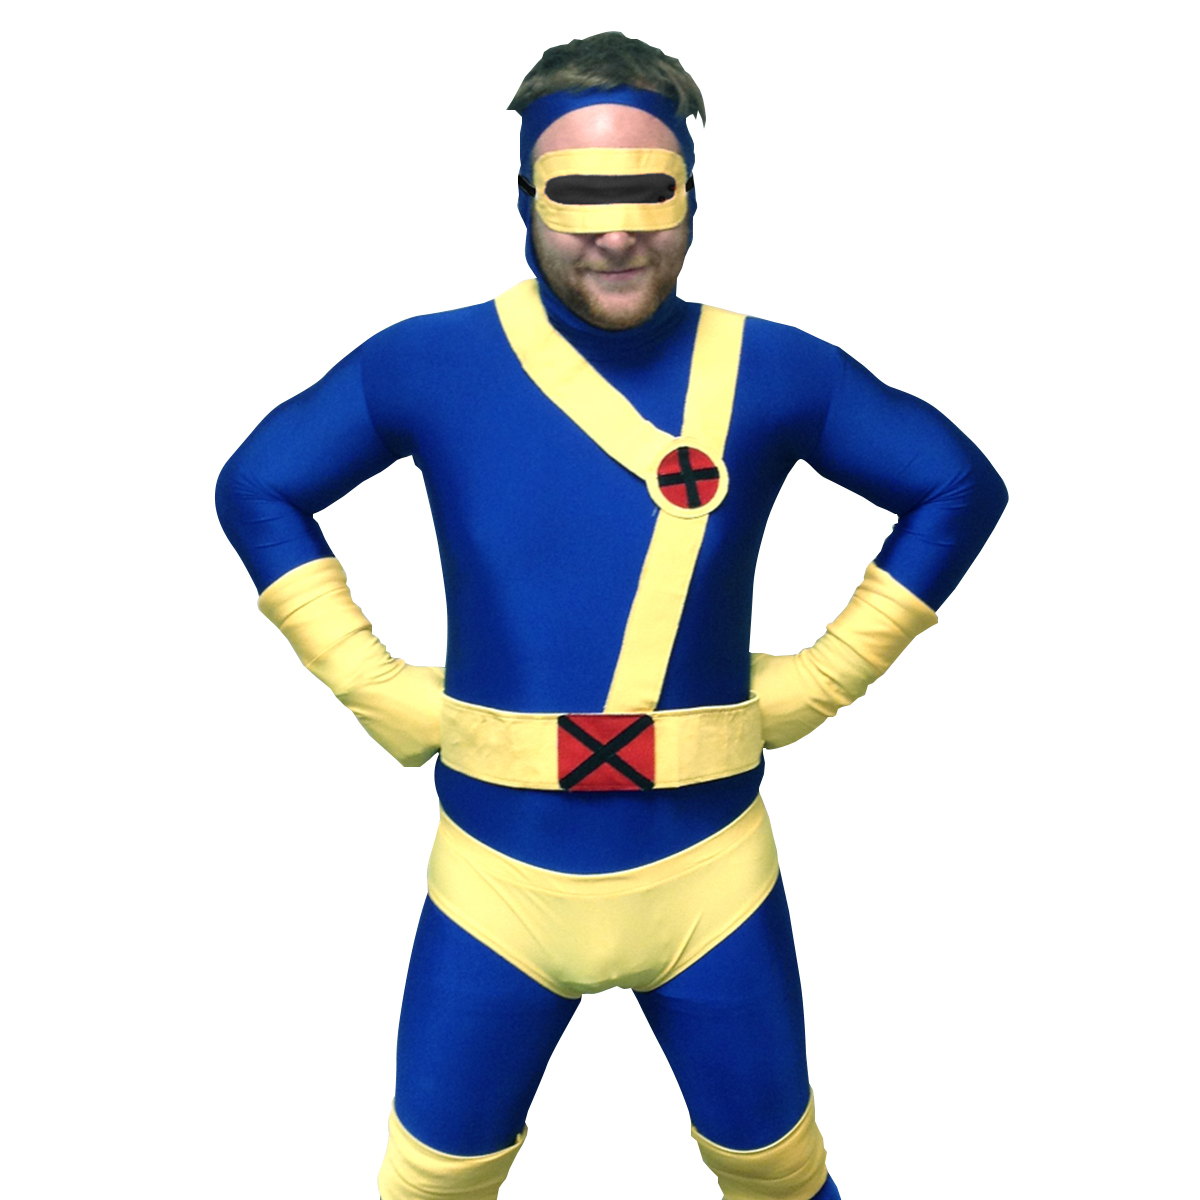 Cyclops Adult Costume Body Suit X-Men Superhero Spandex Body Suit Mens Lycra